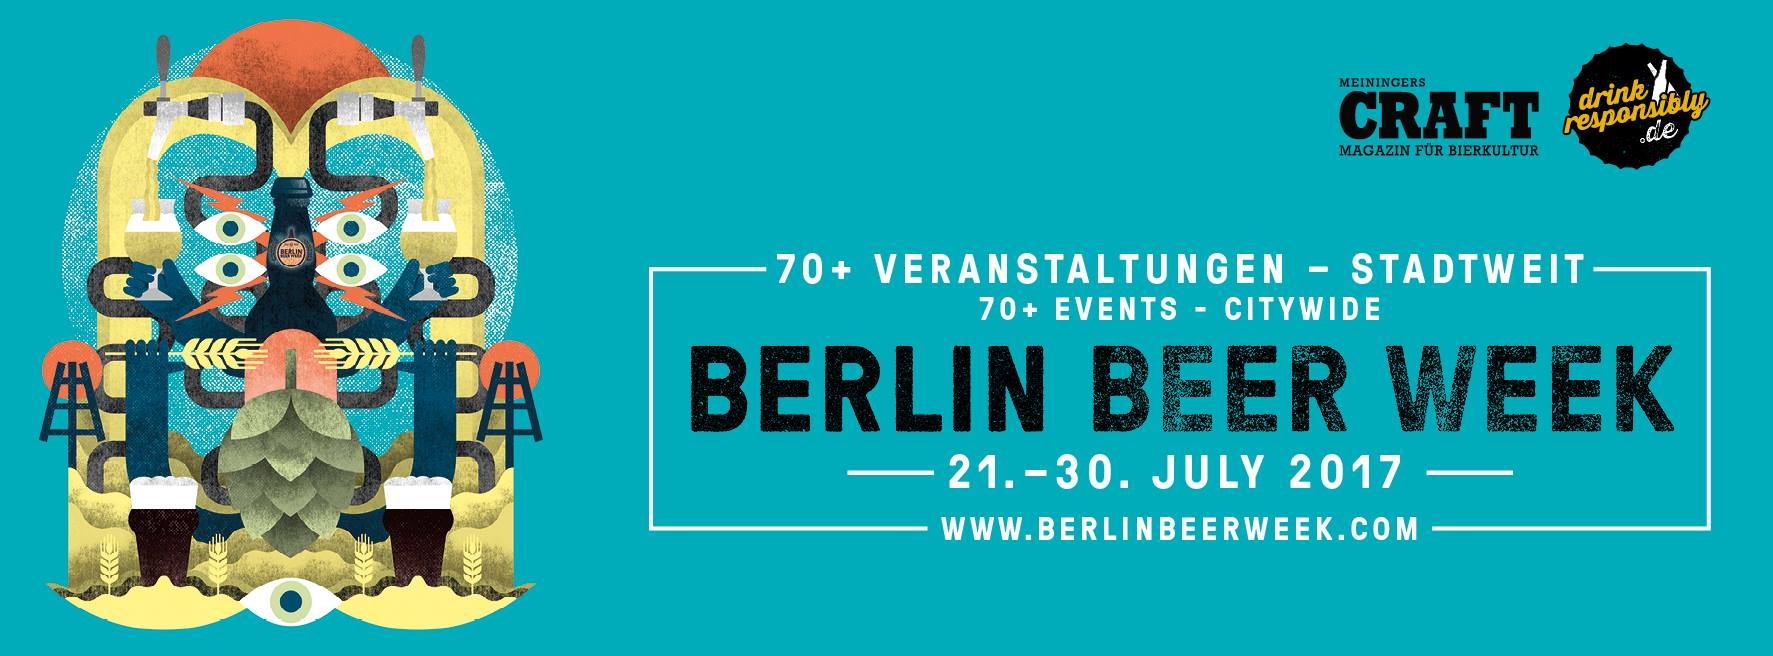 berlin beer week 2017